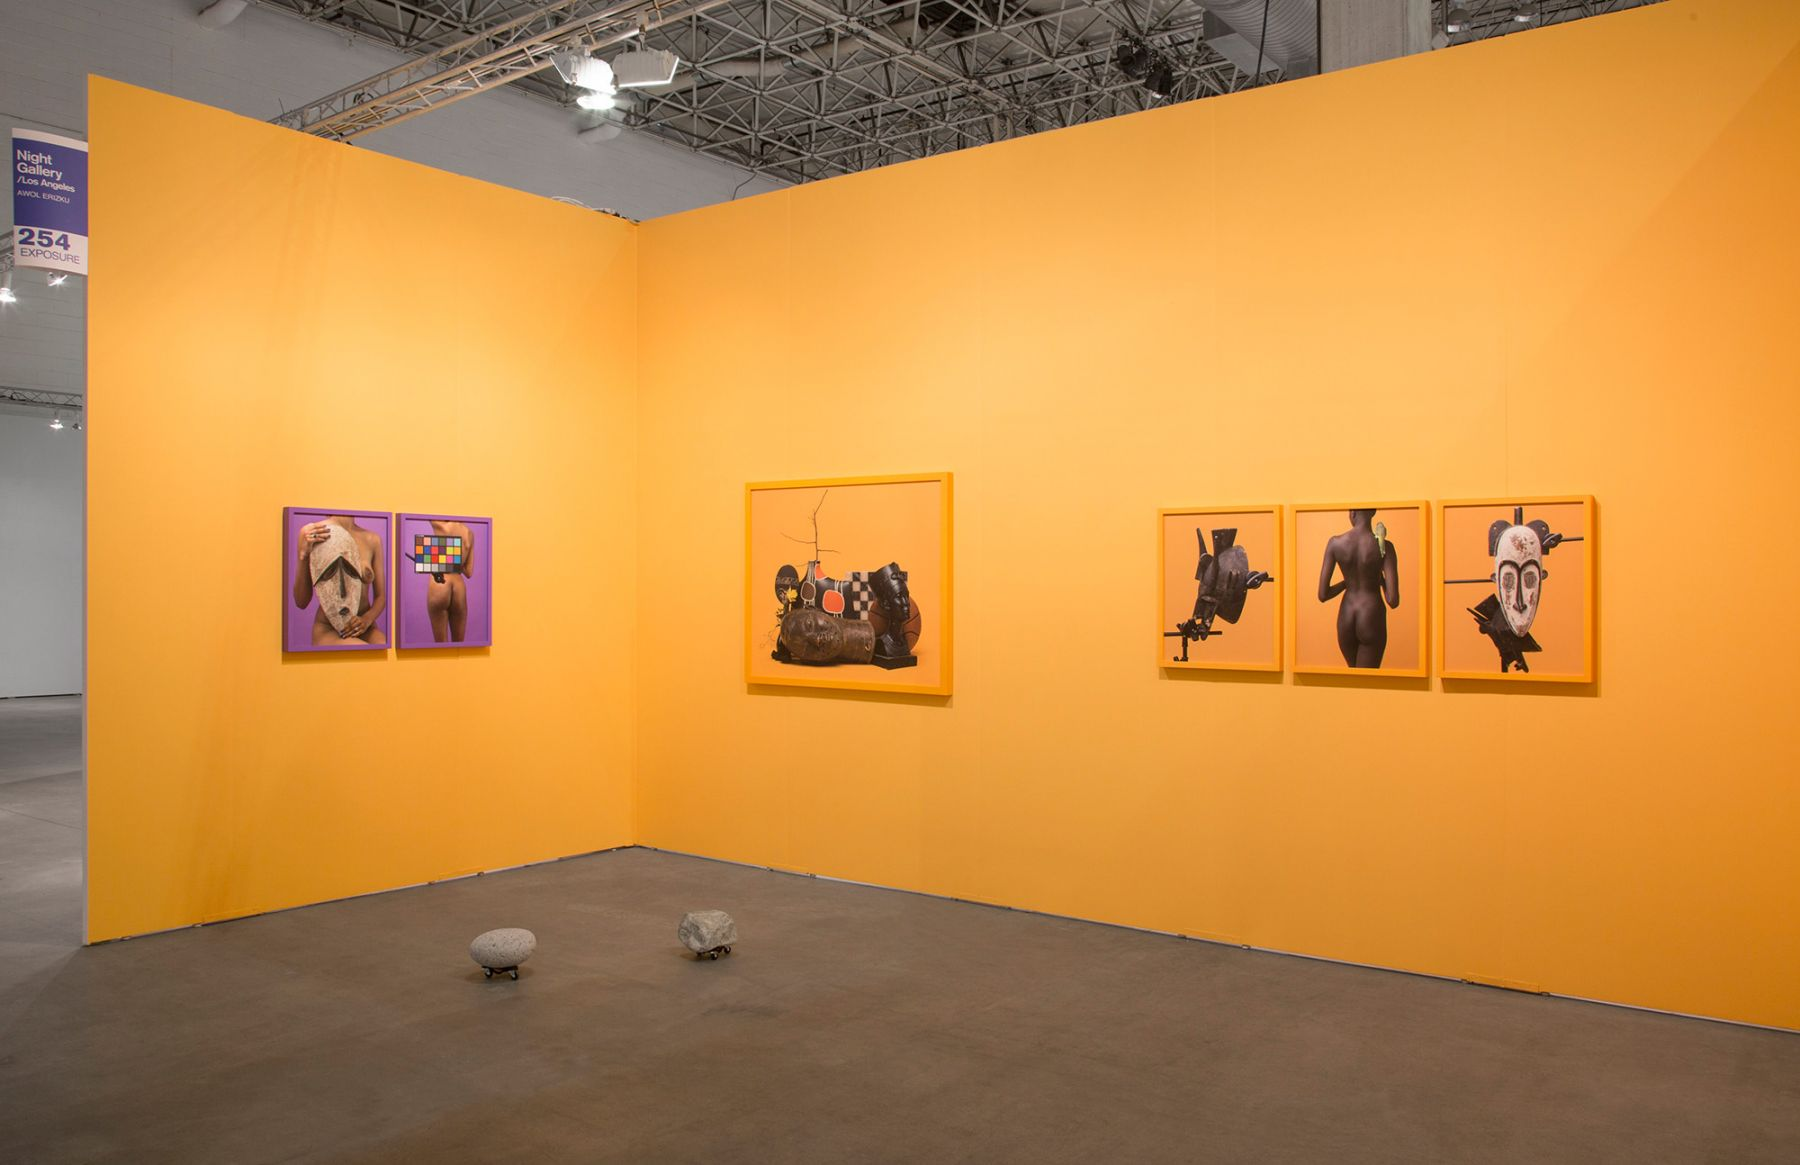 Installation view of Night Gallery booth at EXPO Chicago, 2018. Image courtesy of Night Gallery.